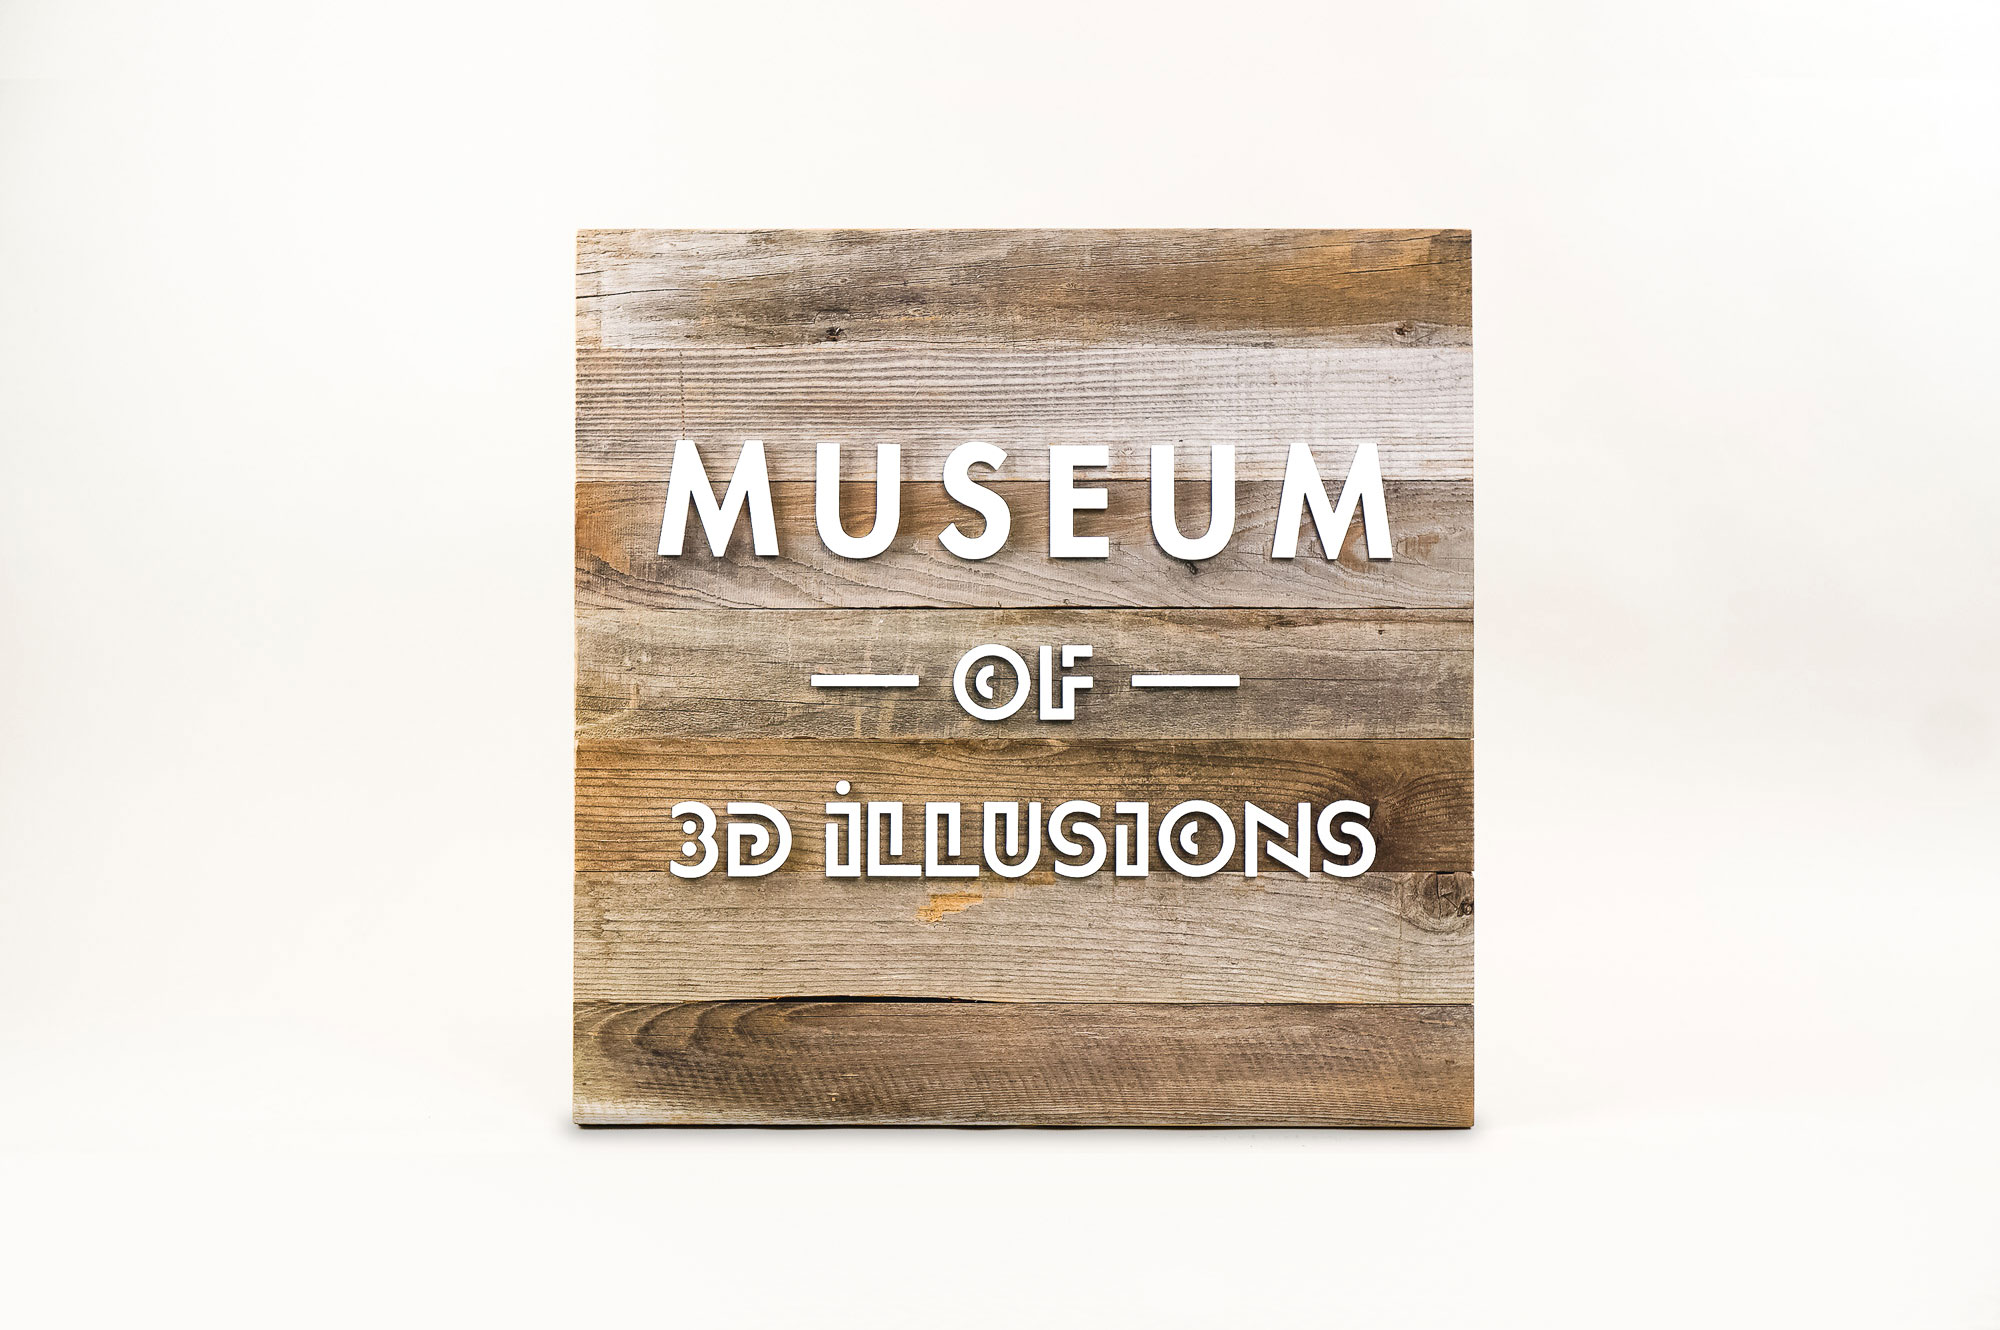 Reclaimed wood blade sign with white artwork for Museum of 3D Illusions in San Francisco.